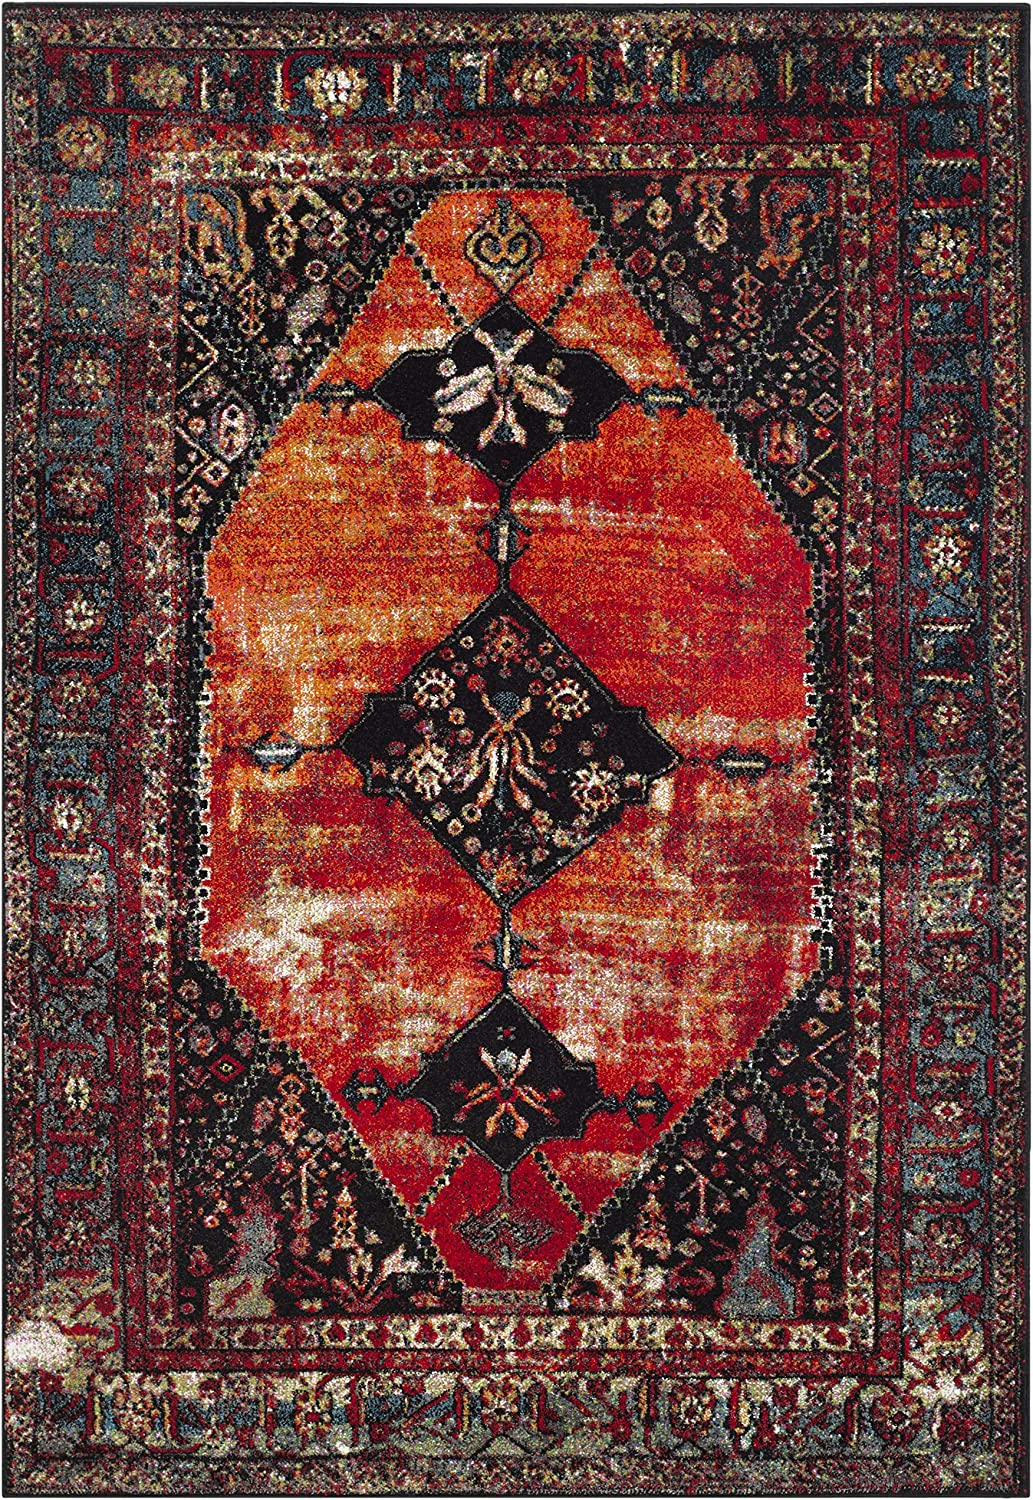 Safavieh Vintage Hamadan Collection Vth217b Oriental Antiqued Orange And Multi Area Rug 5 3 X 7 6 Amazon Ca Home Kitchen